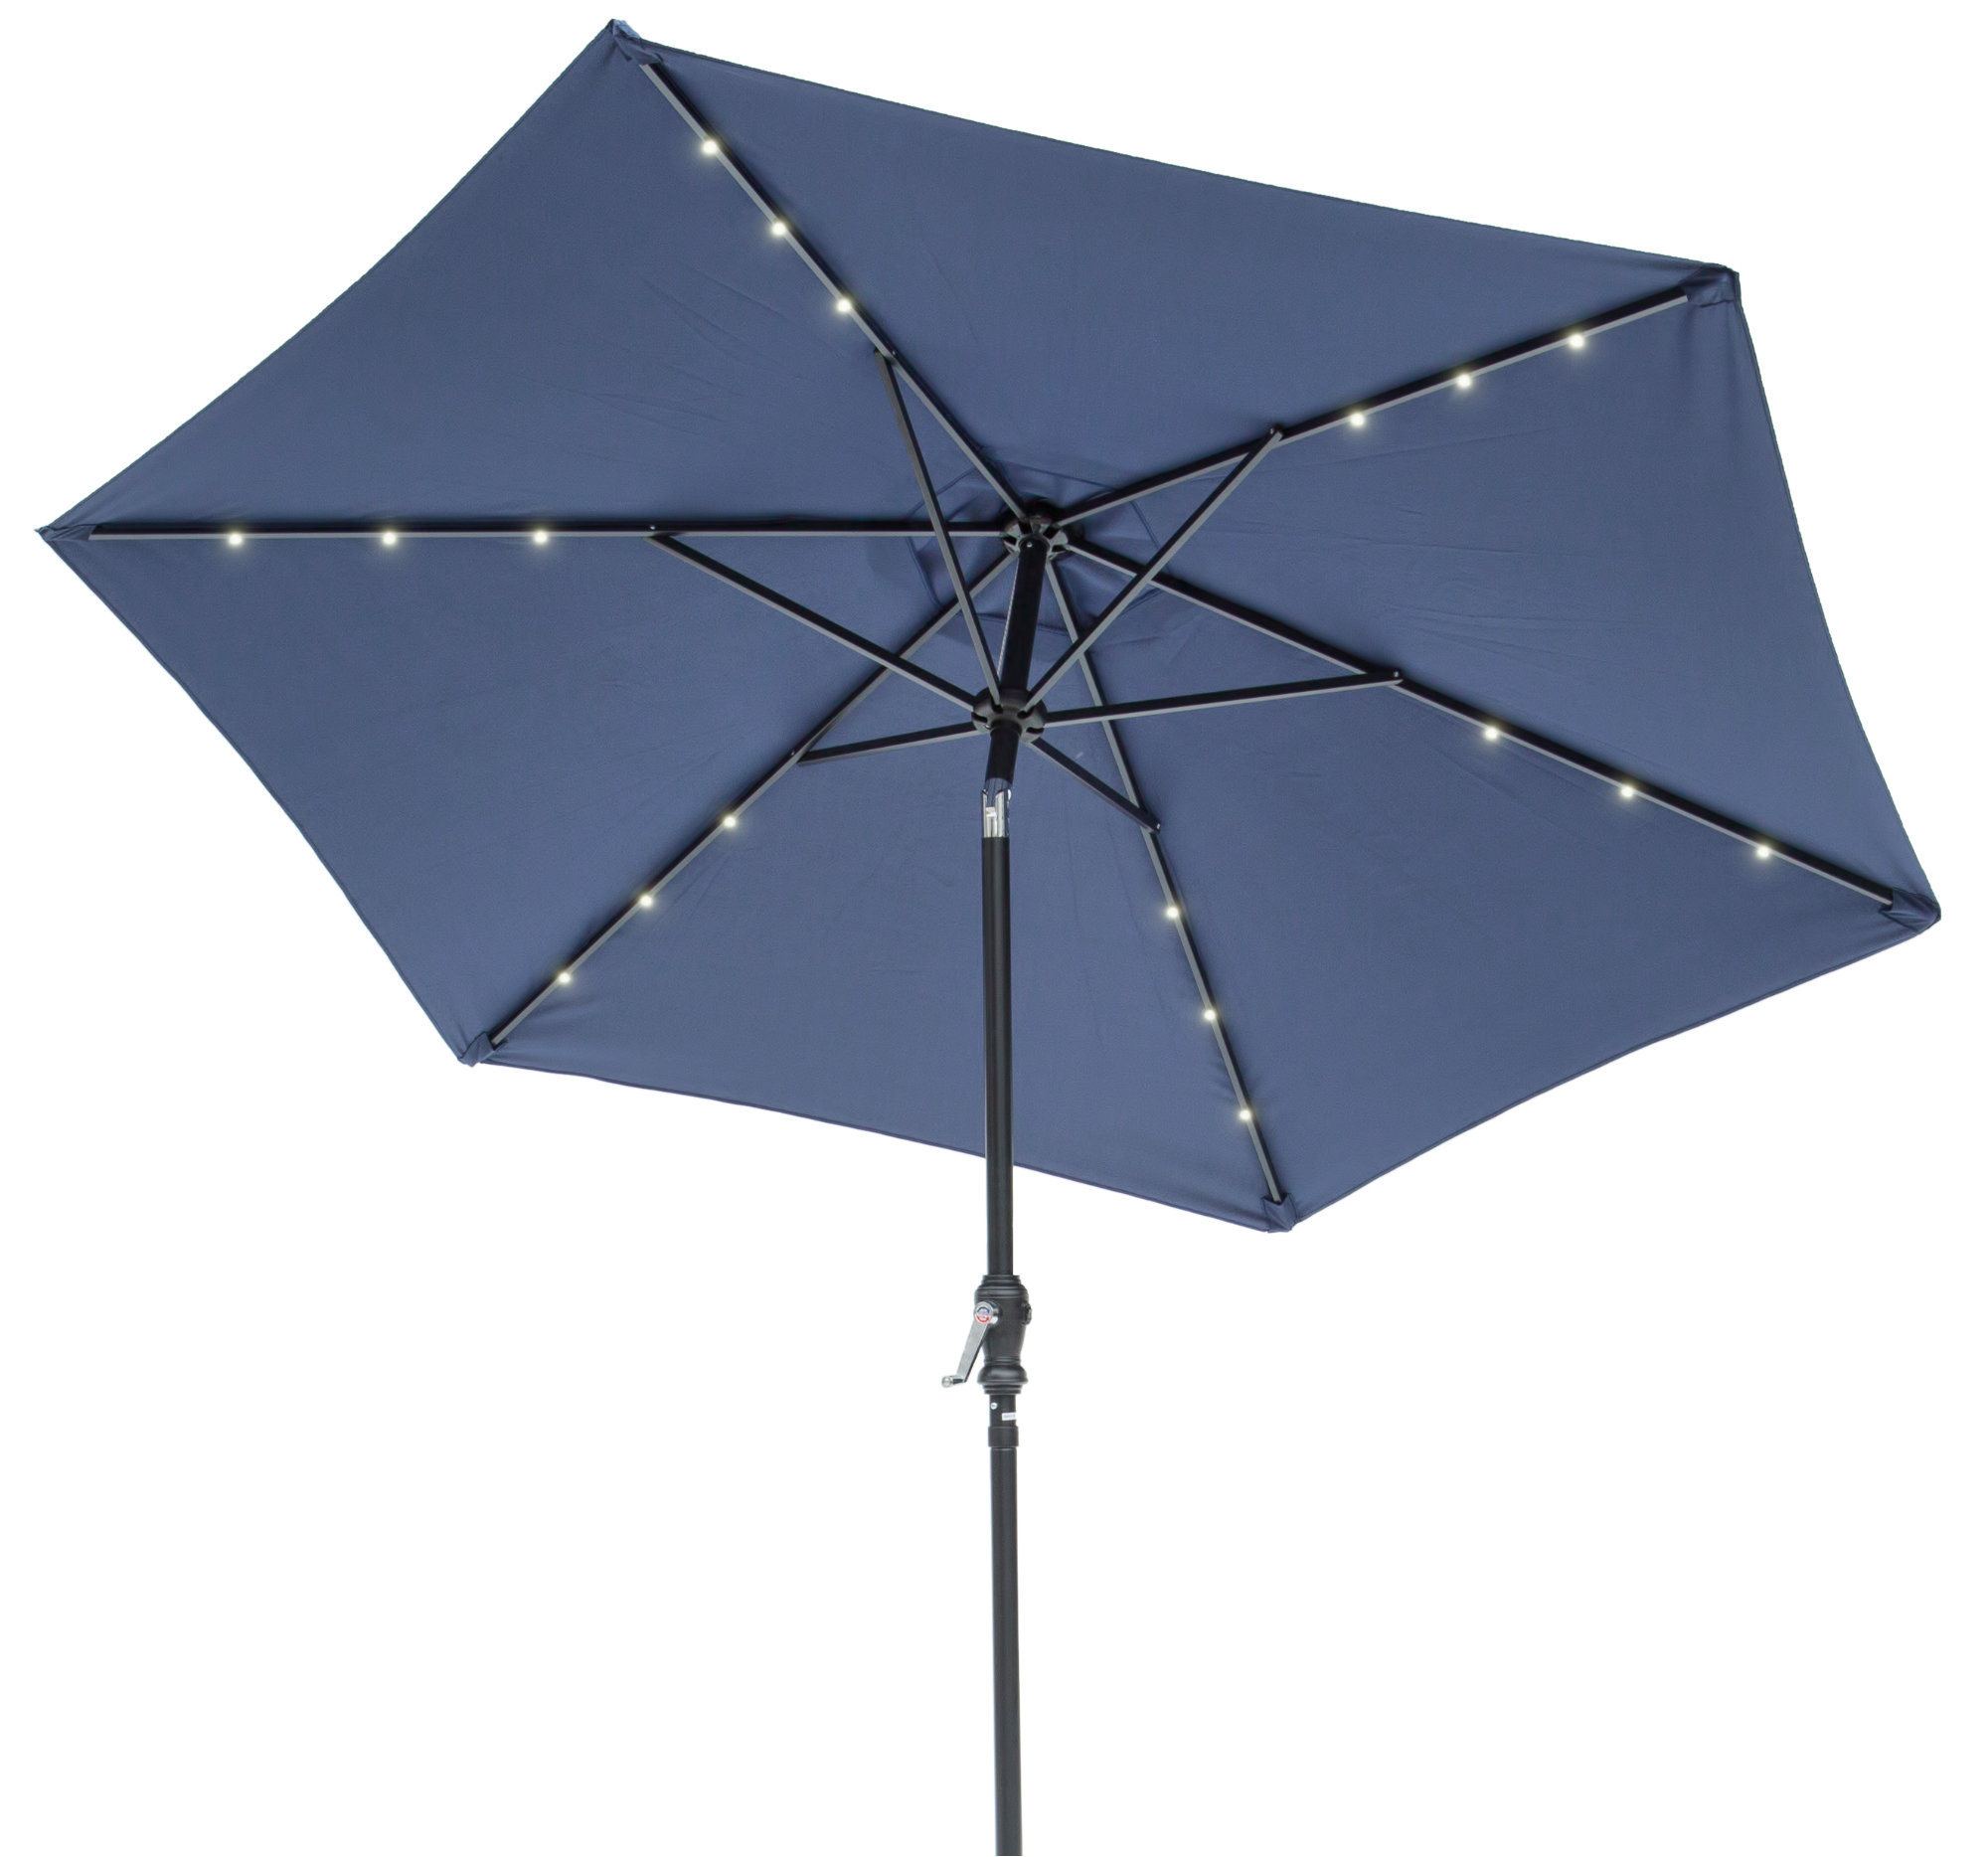 Herlinda Solar Lighted 9' Market Umbrella For Most Popular Woll Lighted Market Umbrellas (Gallery 19 of 20)